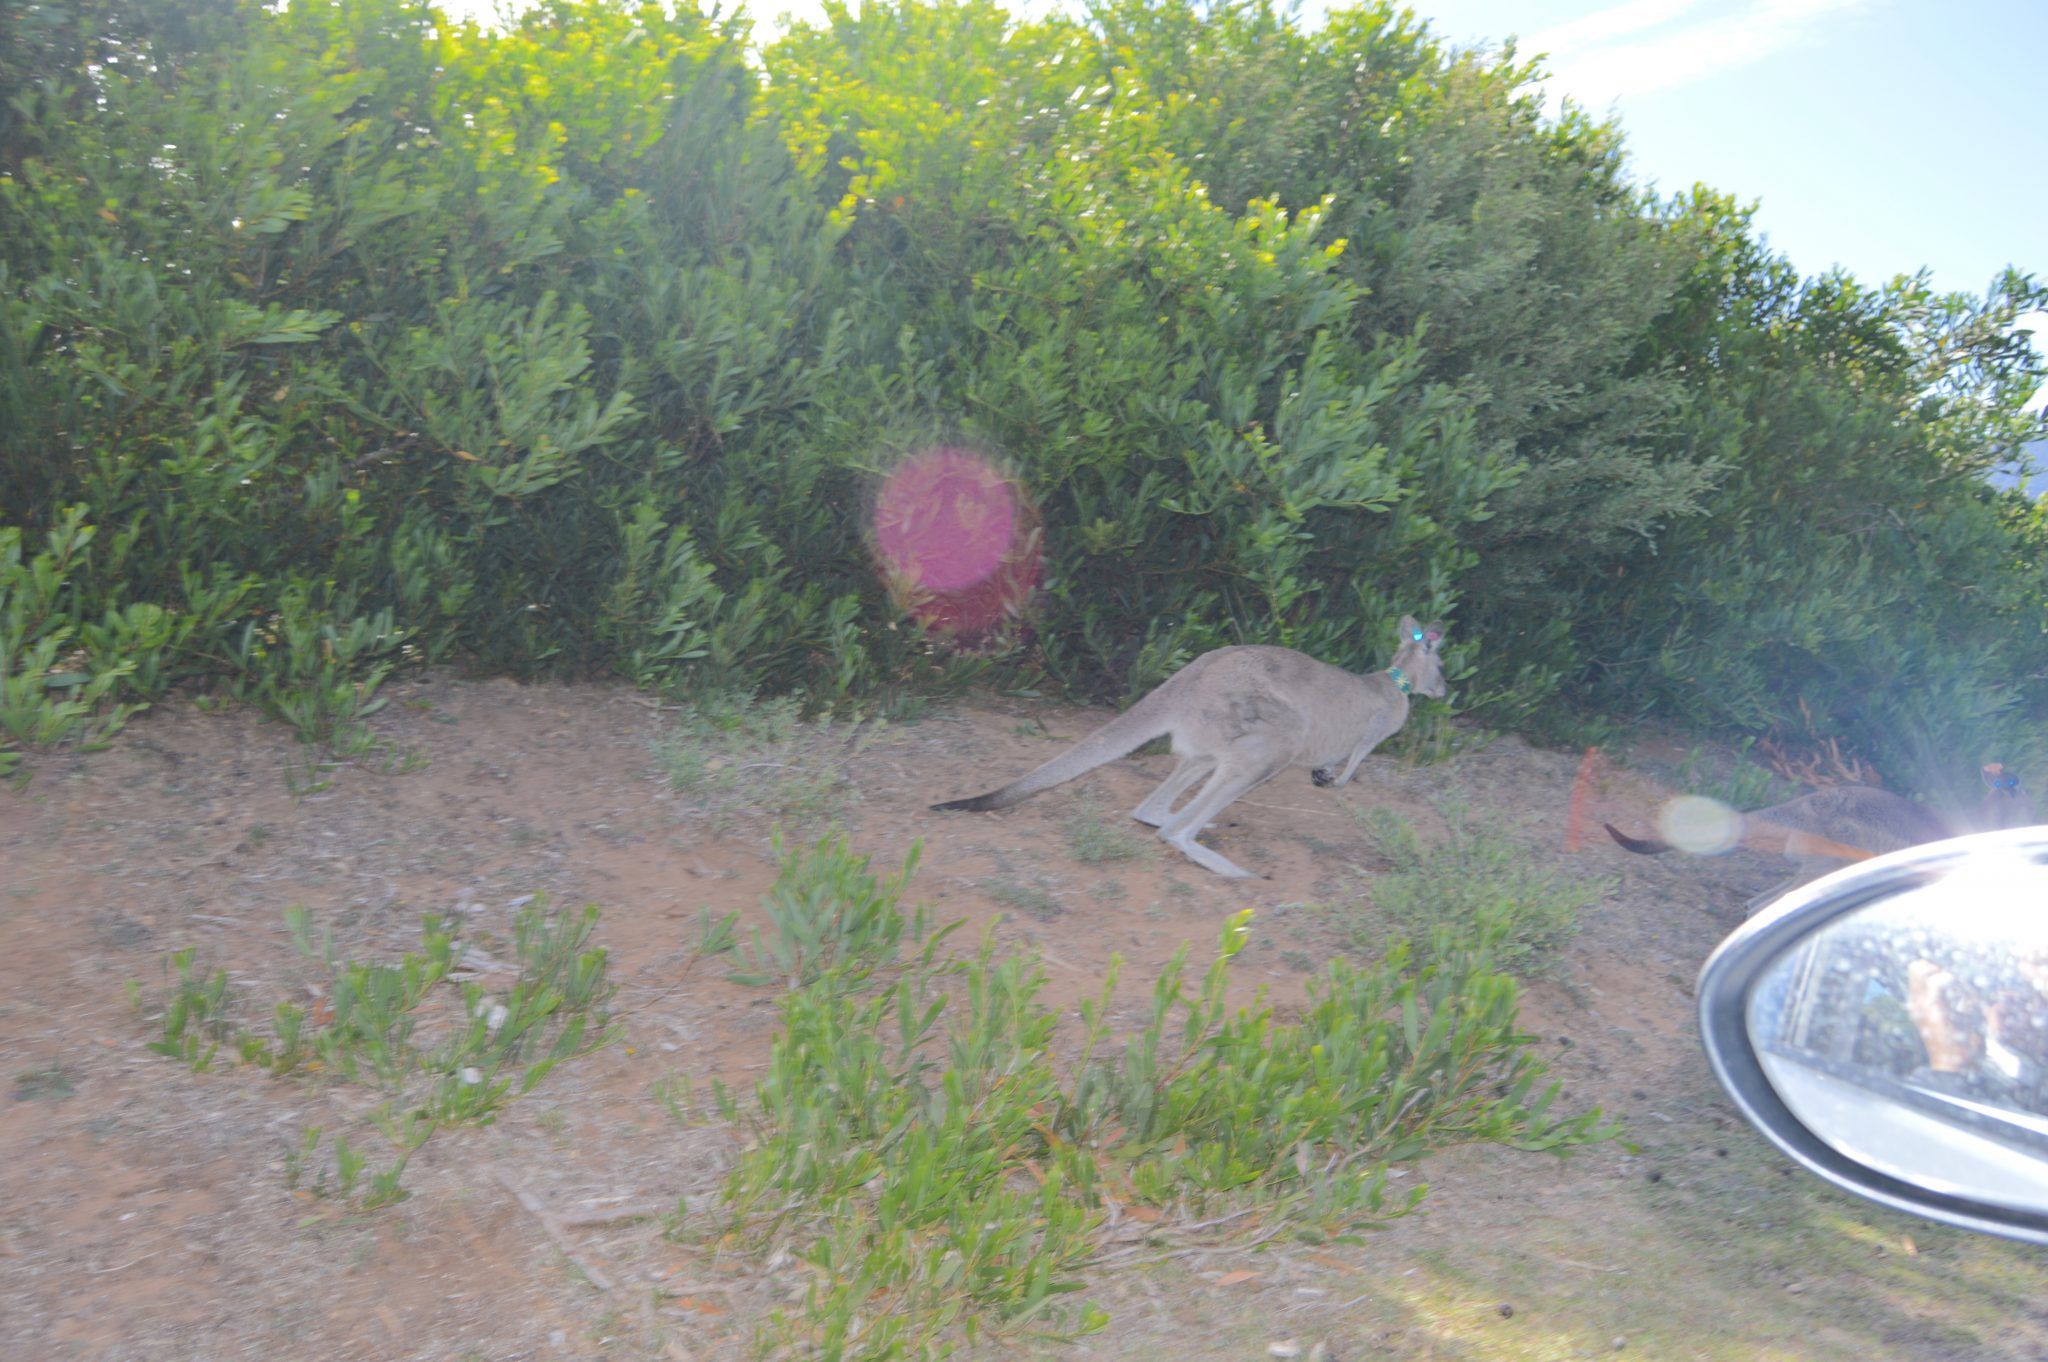 152. This kangaroo suddenly jumped in front of our car